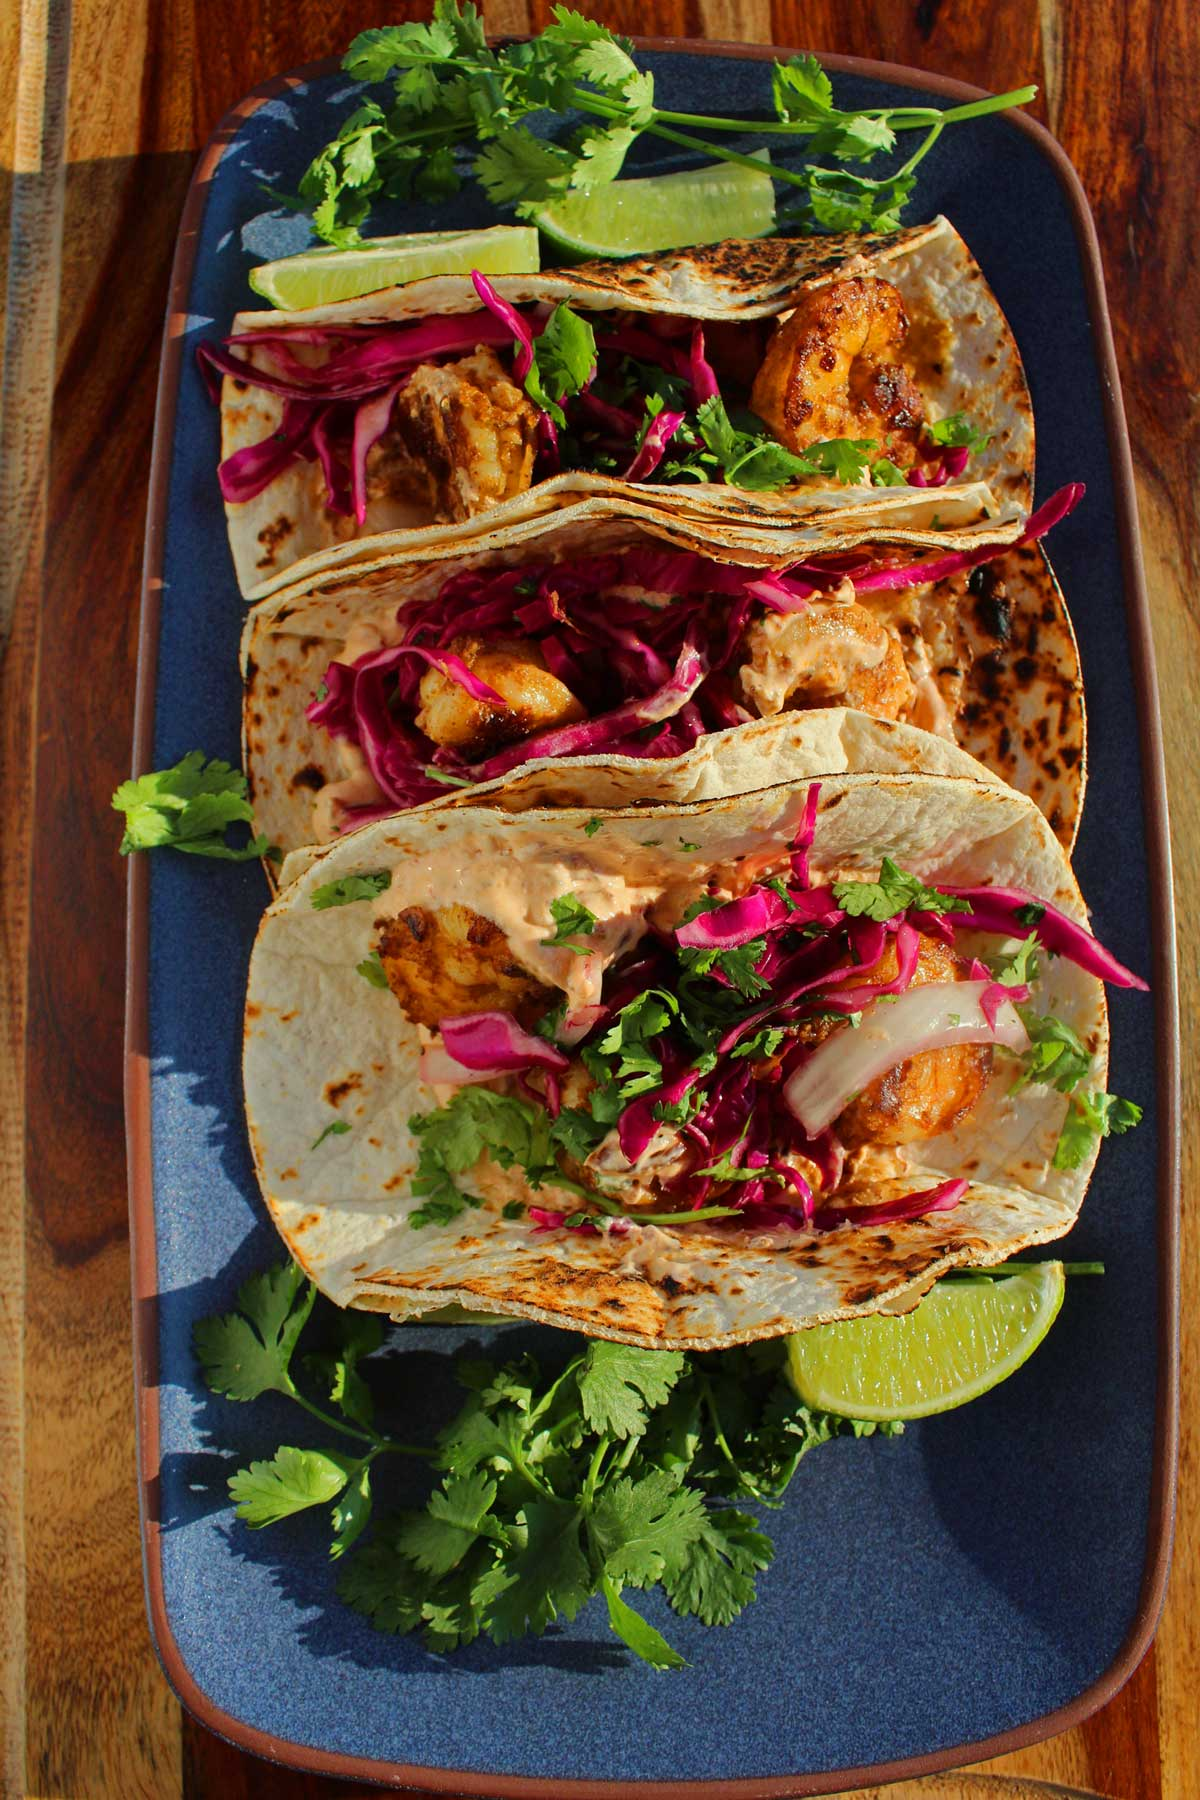 Warm garlicky shrimp, fresh sweet and tangy red cabbage slaw, with smoky and spicy sour cream, intensely flavor these easy shrimp tacos. You'll love em!